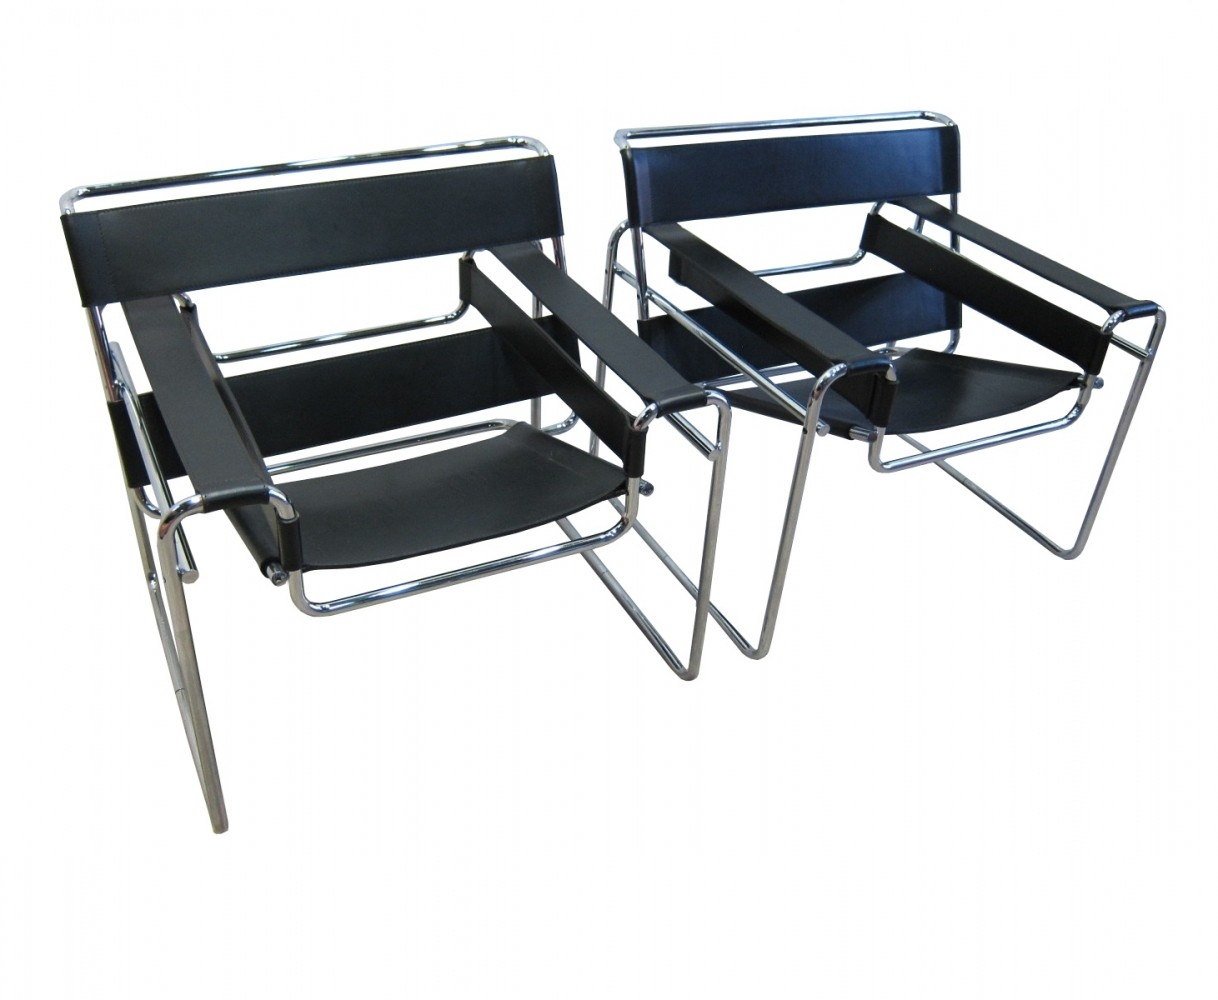 pair of knoll b3 39 wassily 39 chairs by marcel breuer 69508. Black Bedroom Furniture Sets. Home Design Ideas